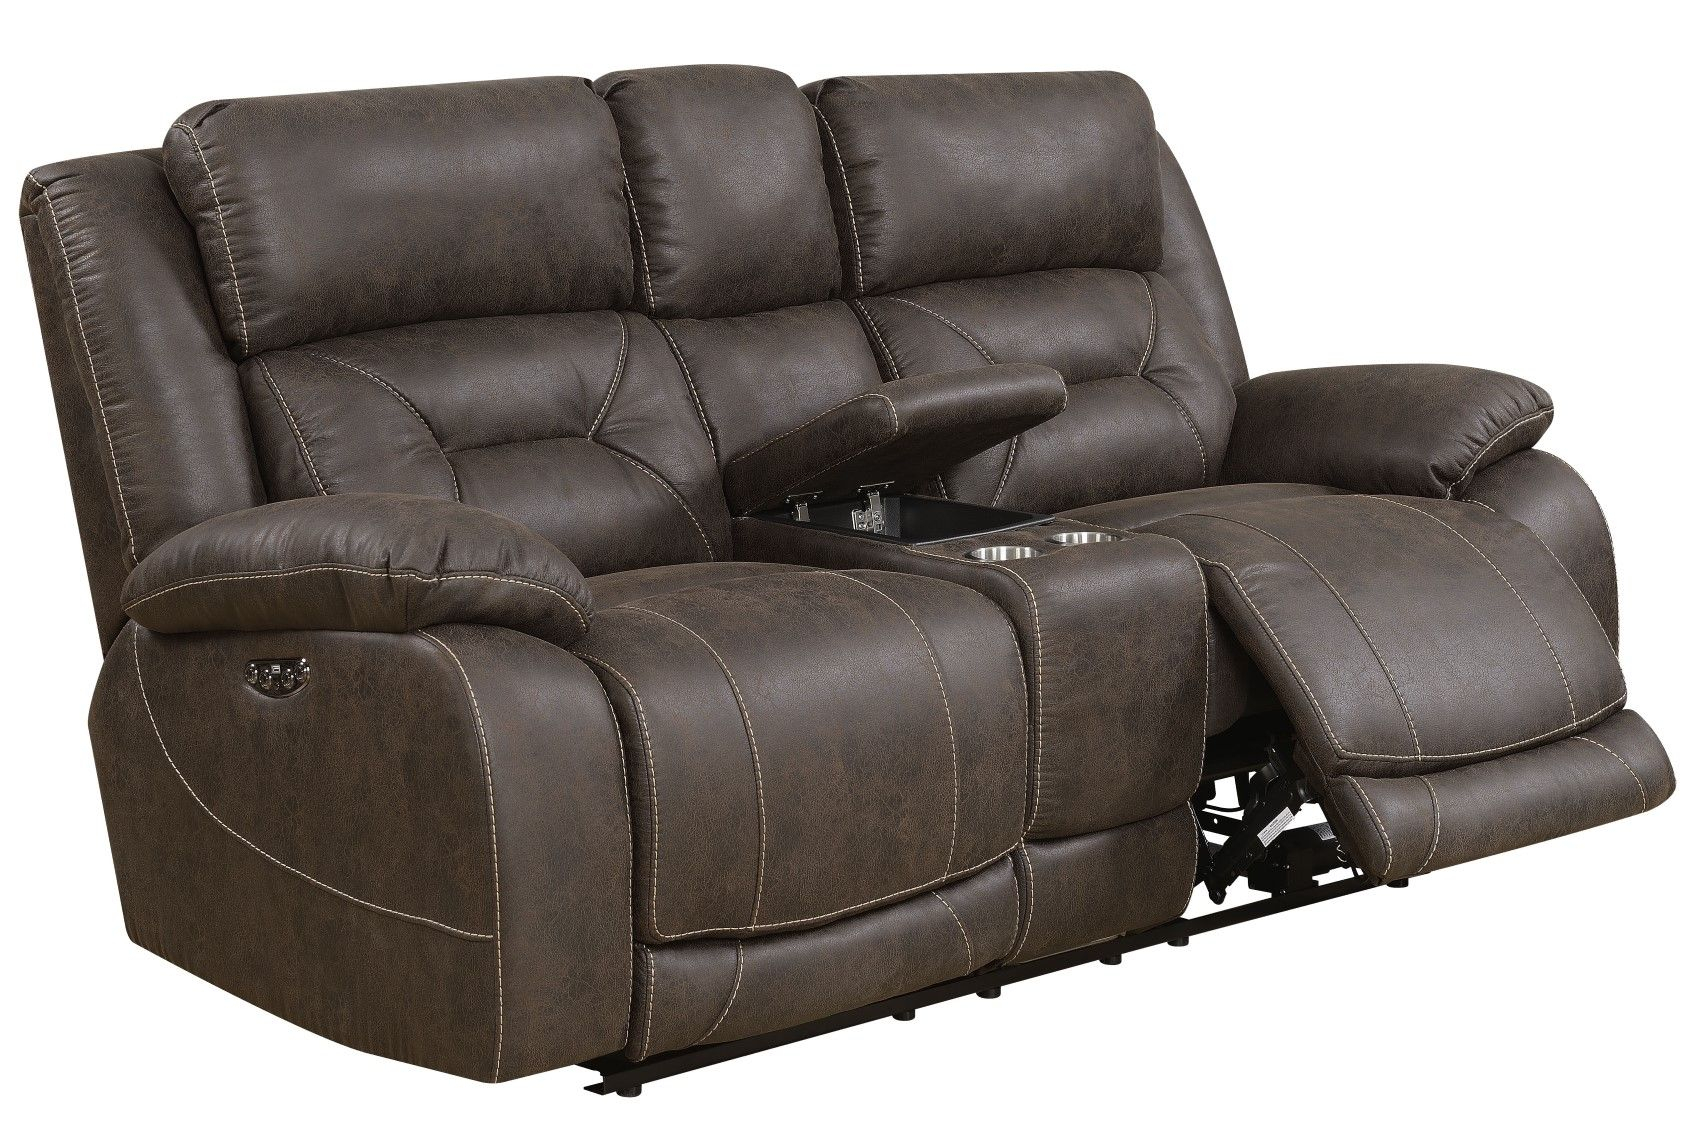 Aria Power Recliner Sofa Set With Power Head Rest In Within Expedition Brown Power Reclining Sofas (View 2 of 15)